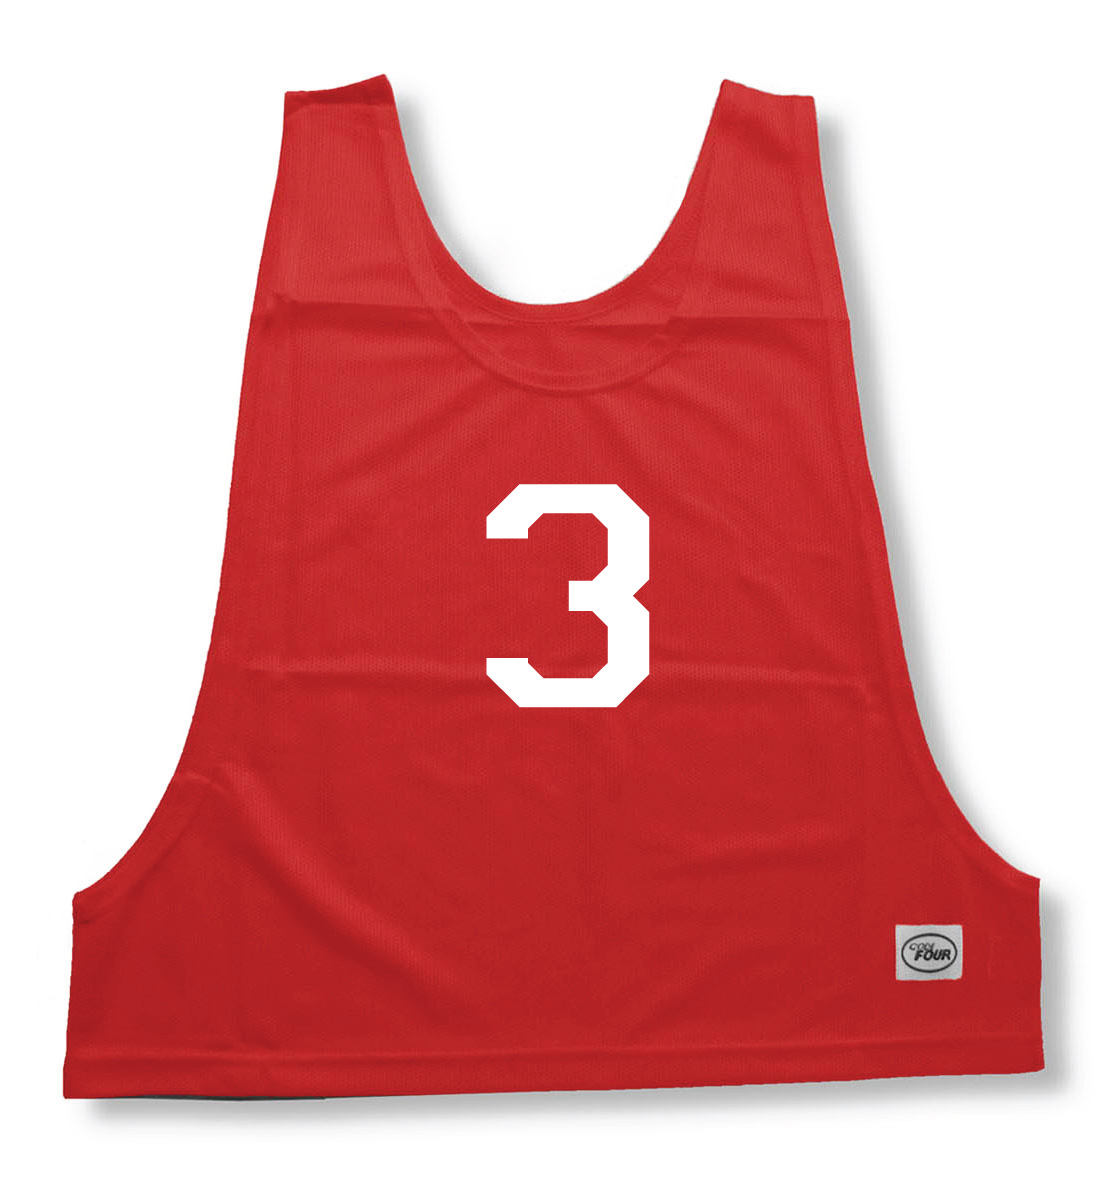 Numbered practice pinny in red by Code Four Athletics